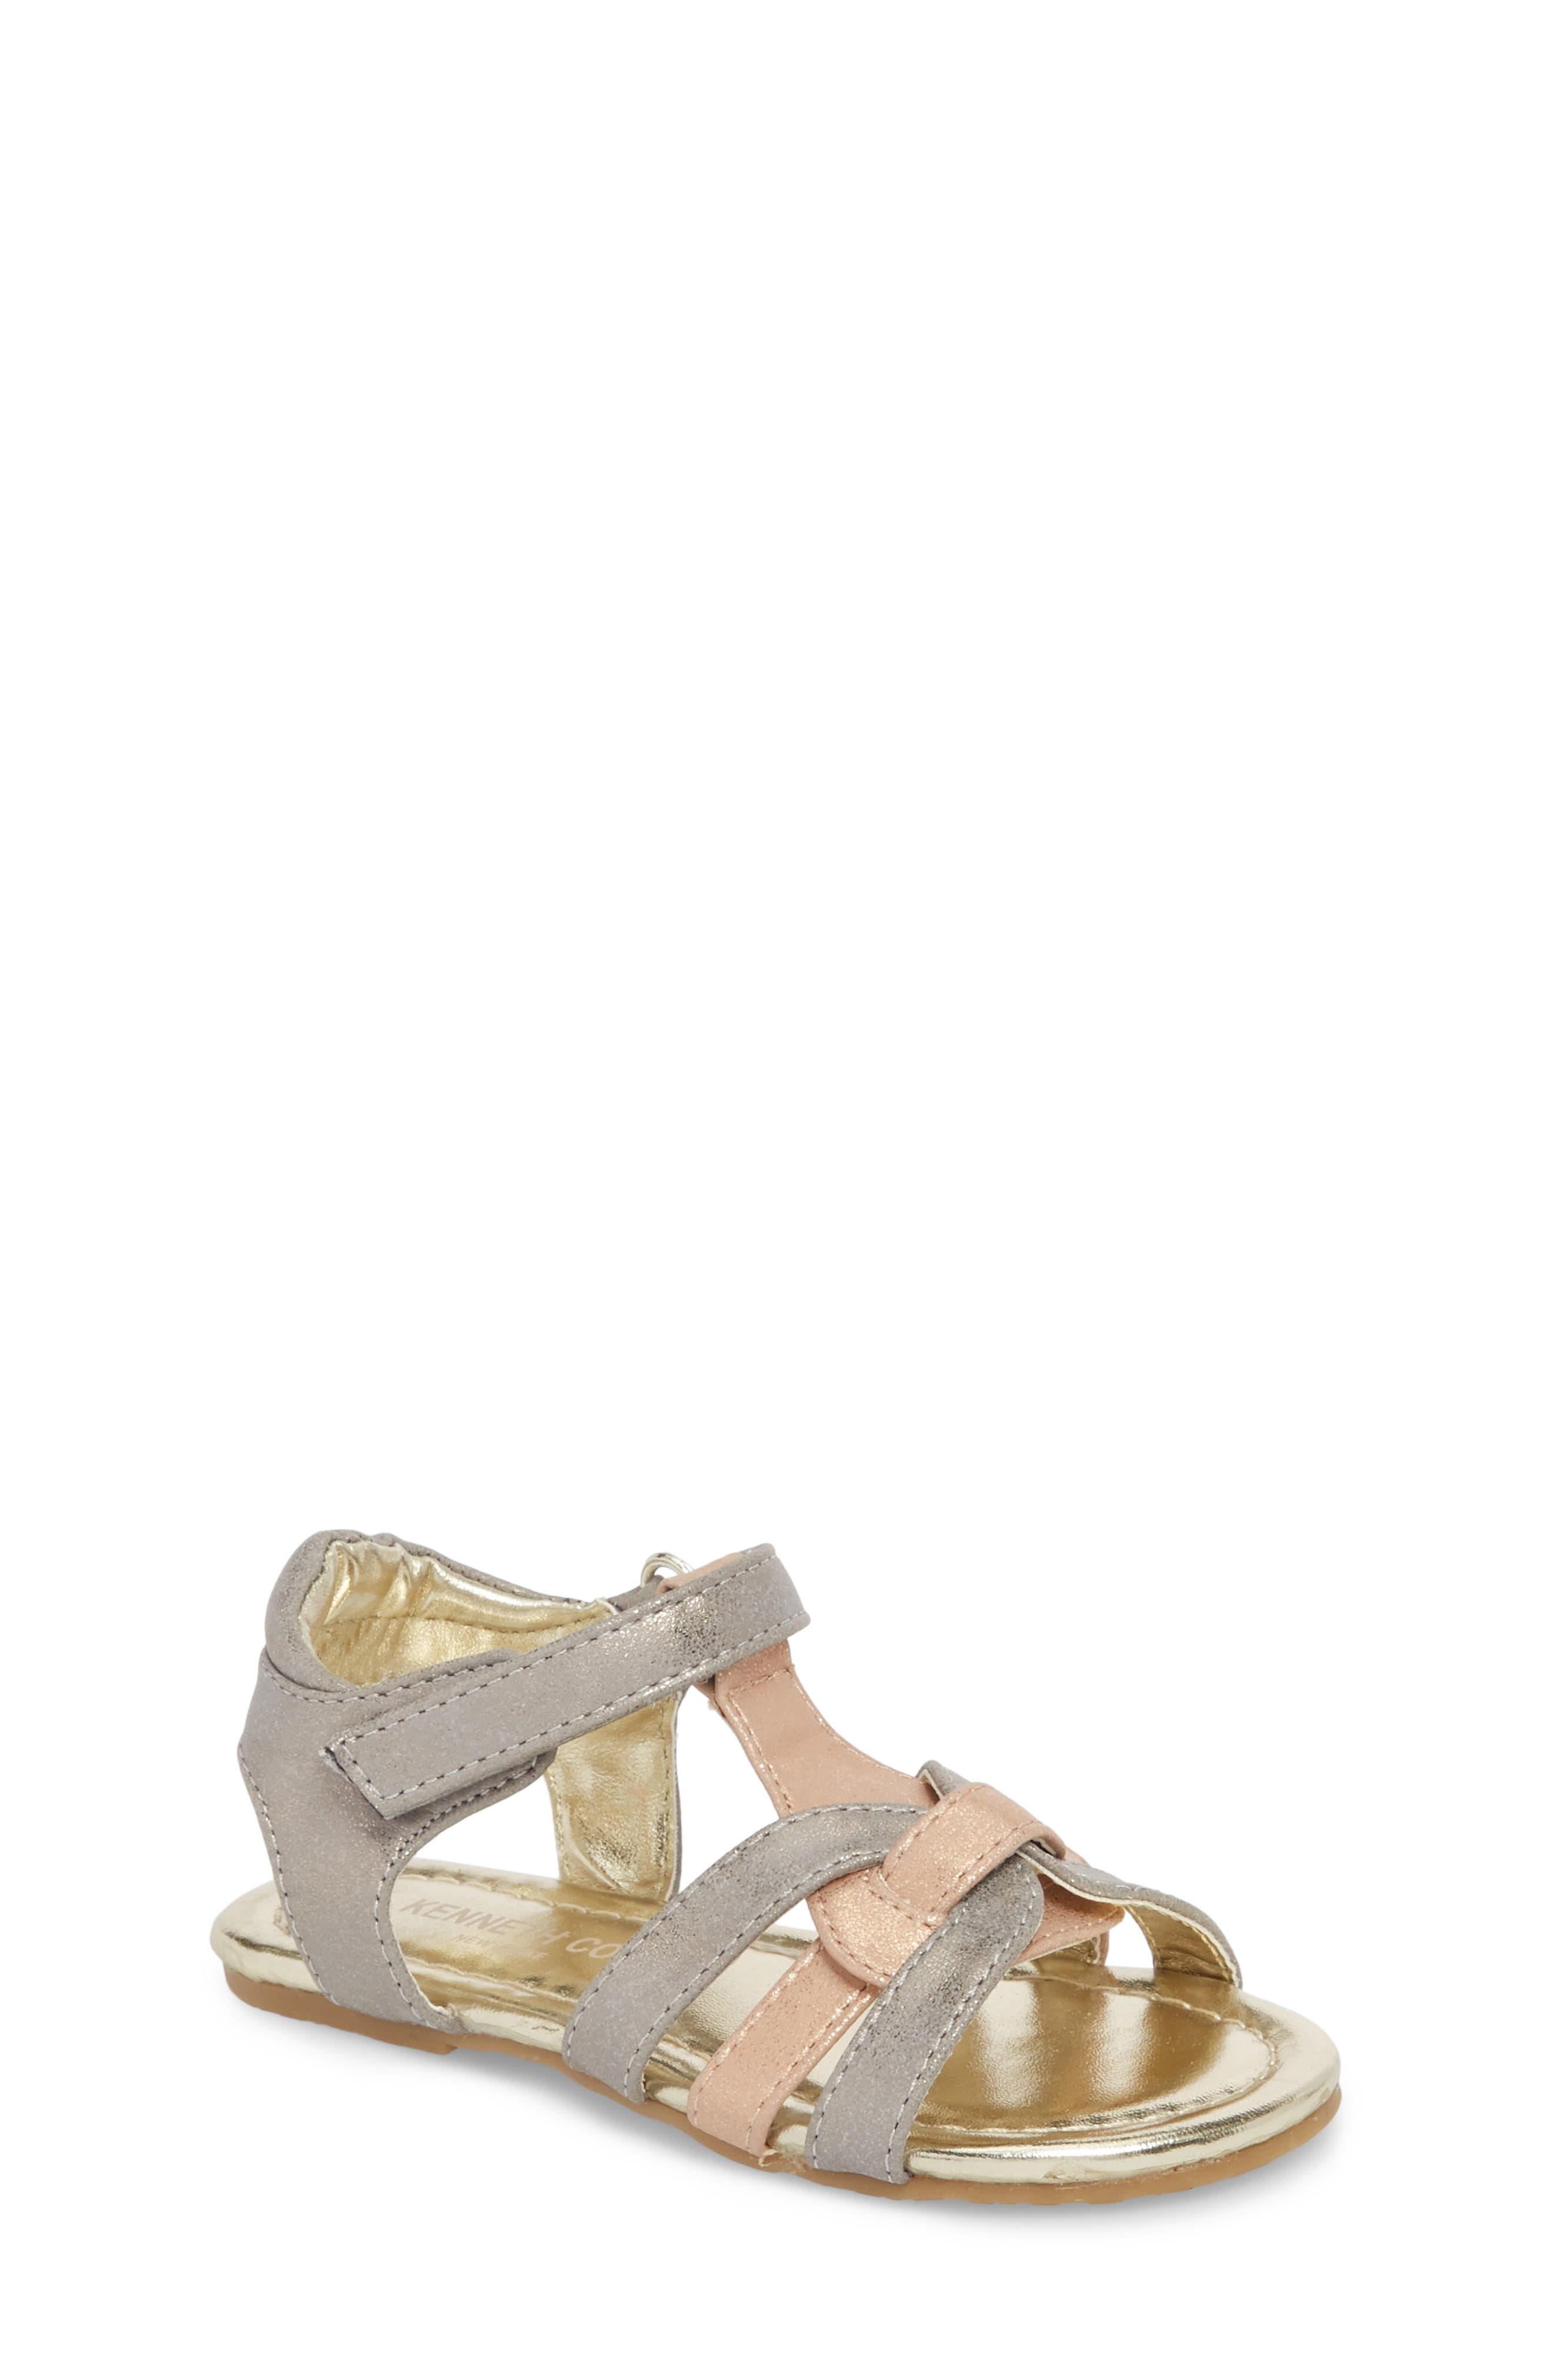 Echo Strappy Sandal,                         Main,                         color, Rose Metallic